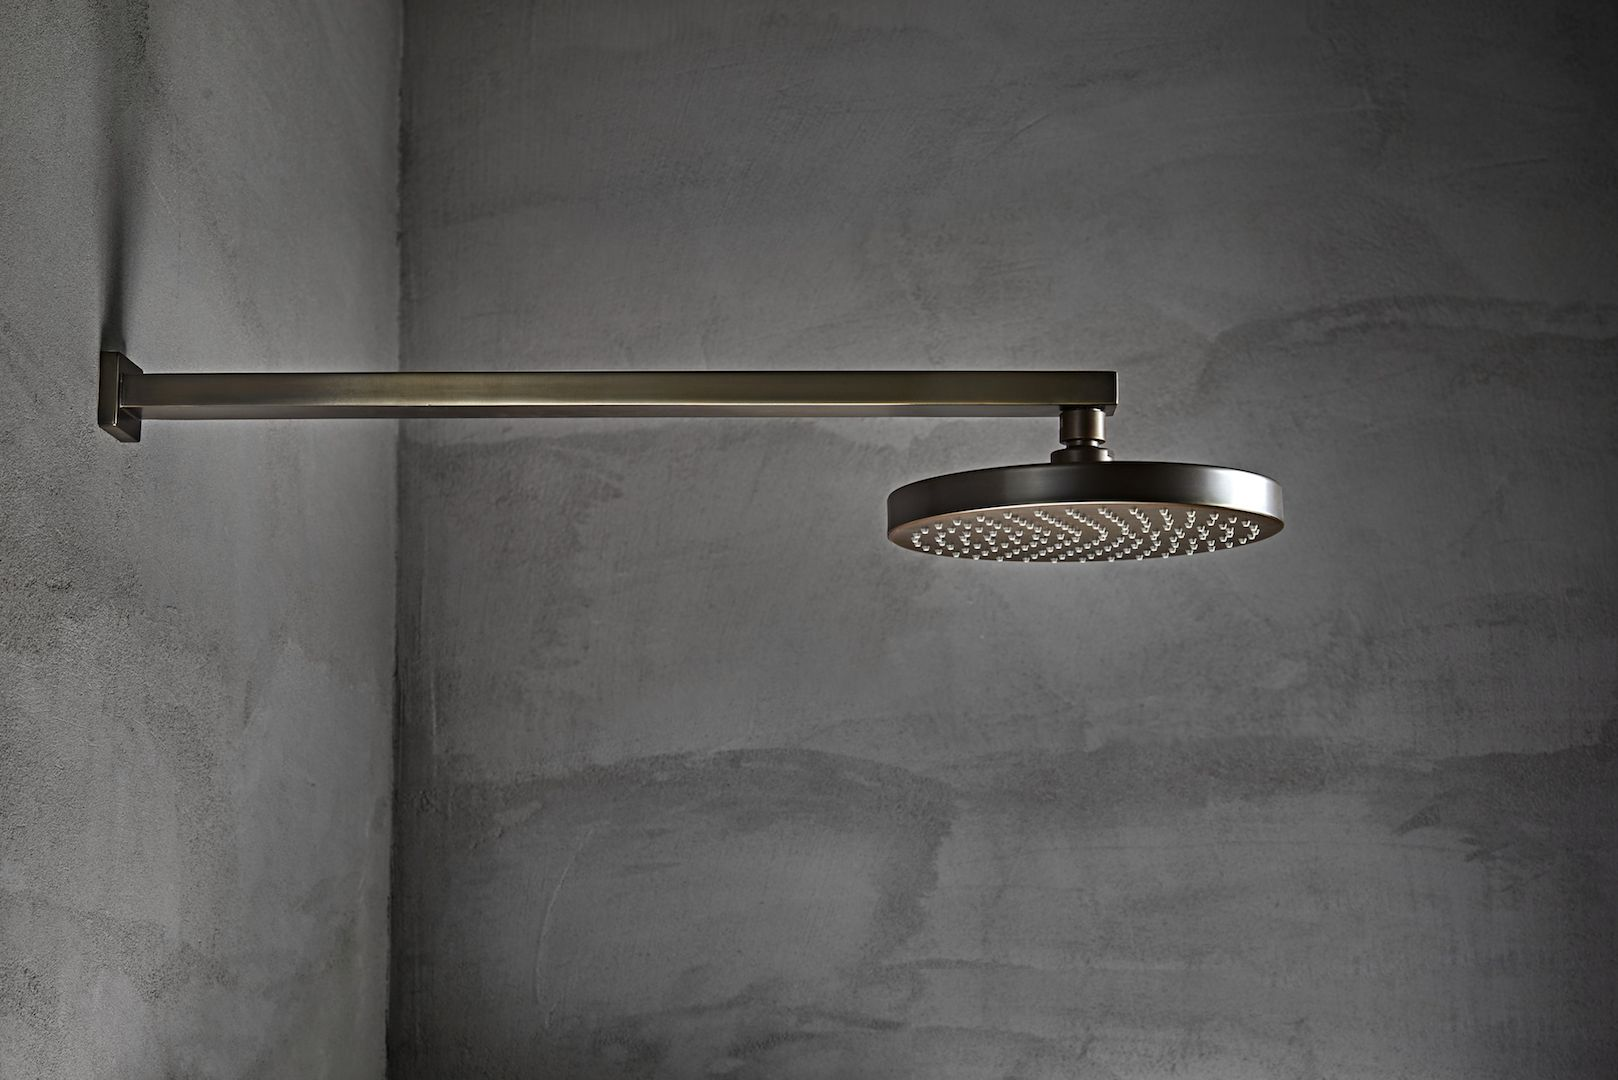 SMALL Y1-4602_8in SHOWER HEAD WITH BALL-JOINT with SKY-18600_20in WALL-MOUNTED SHOWER ARM copy.jpg